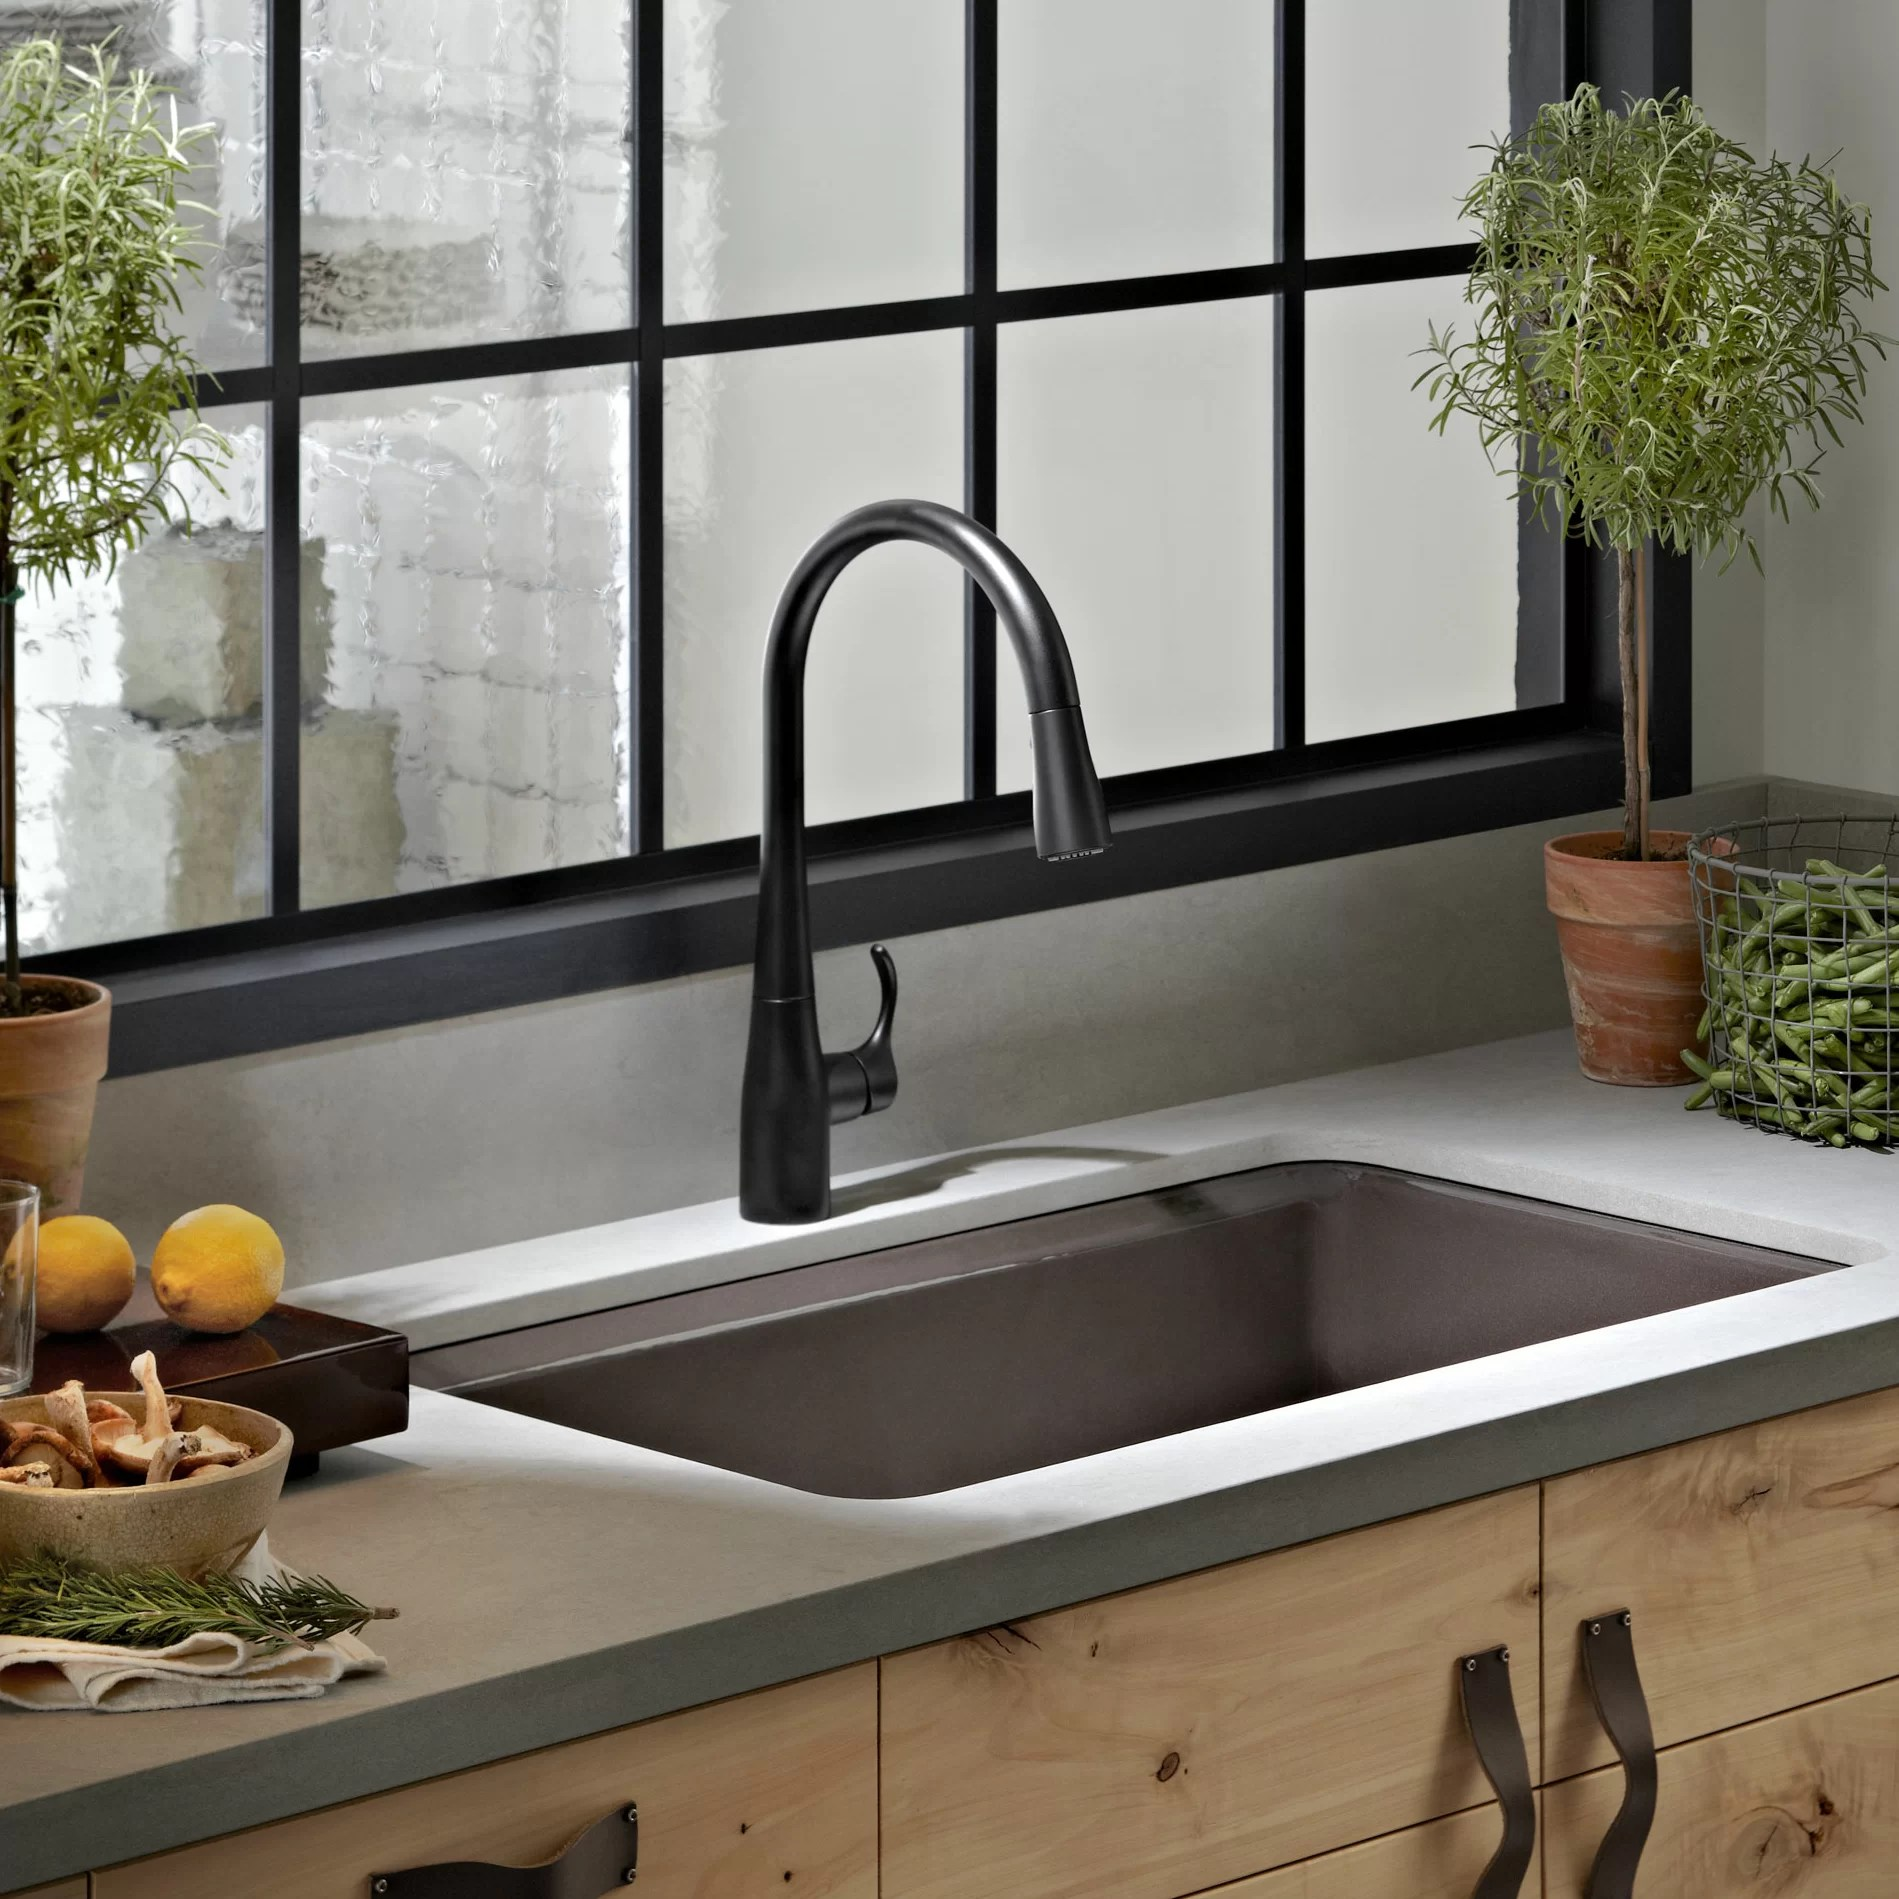 Blanco Farmhouse Sink Reviews Kohler Riverby 33 Quot X 22 Quot X 9 5 8 Quot Top Mount Single Bowl